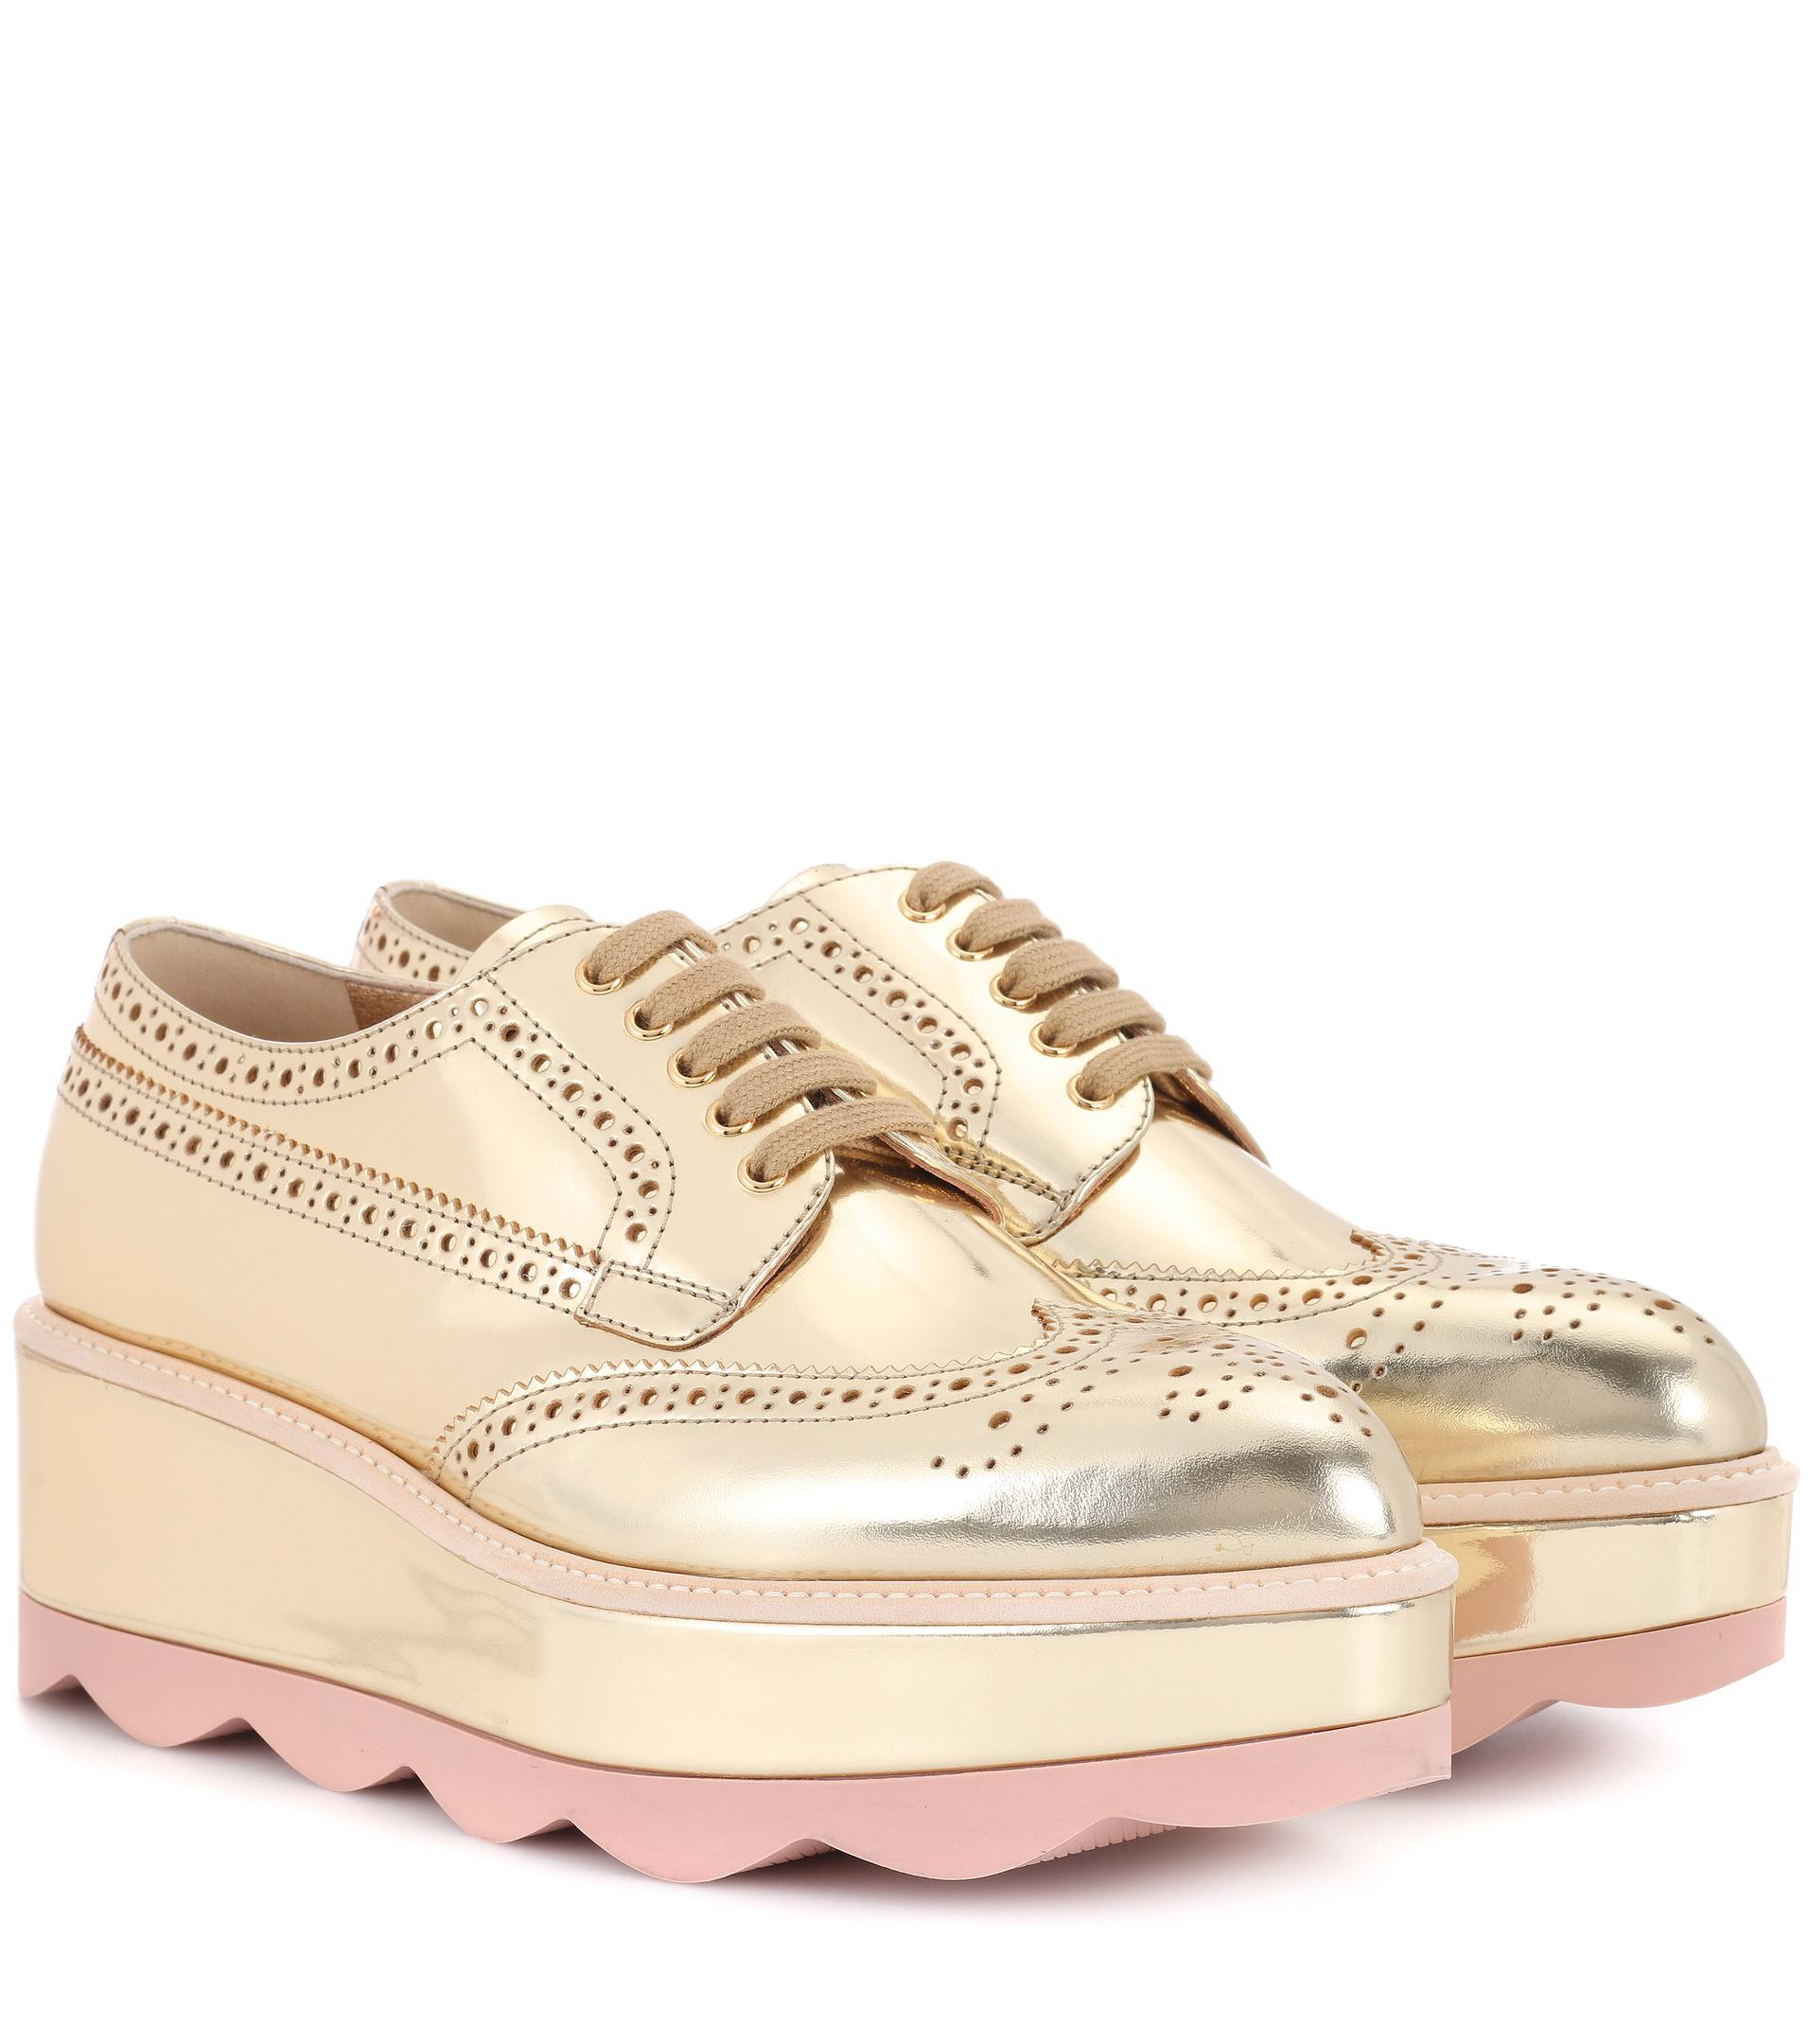 0f2746ff4078 Prada Leather Platform Oxford Shoes in Metallic - Lyst